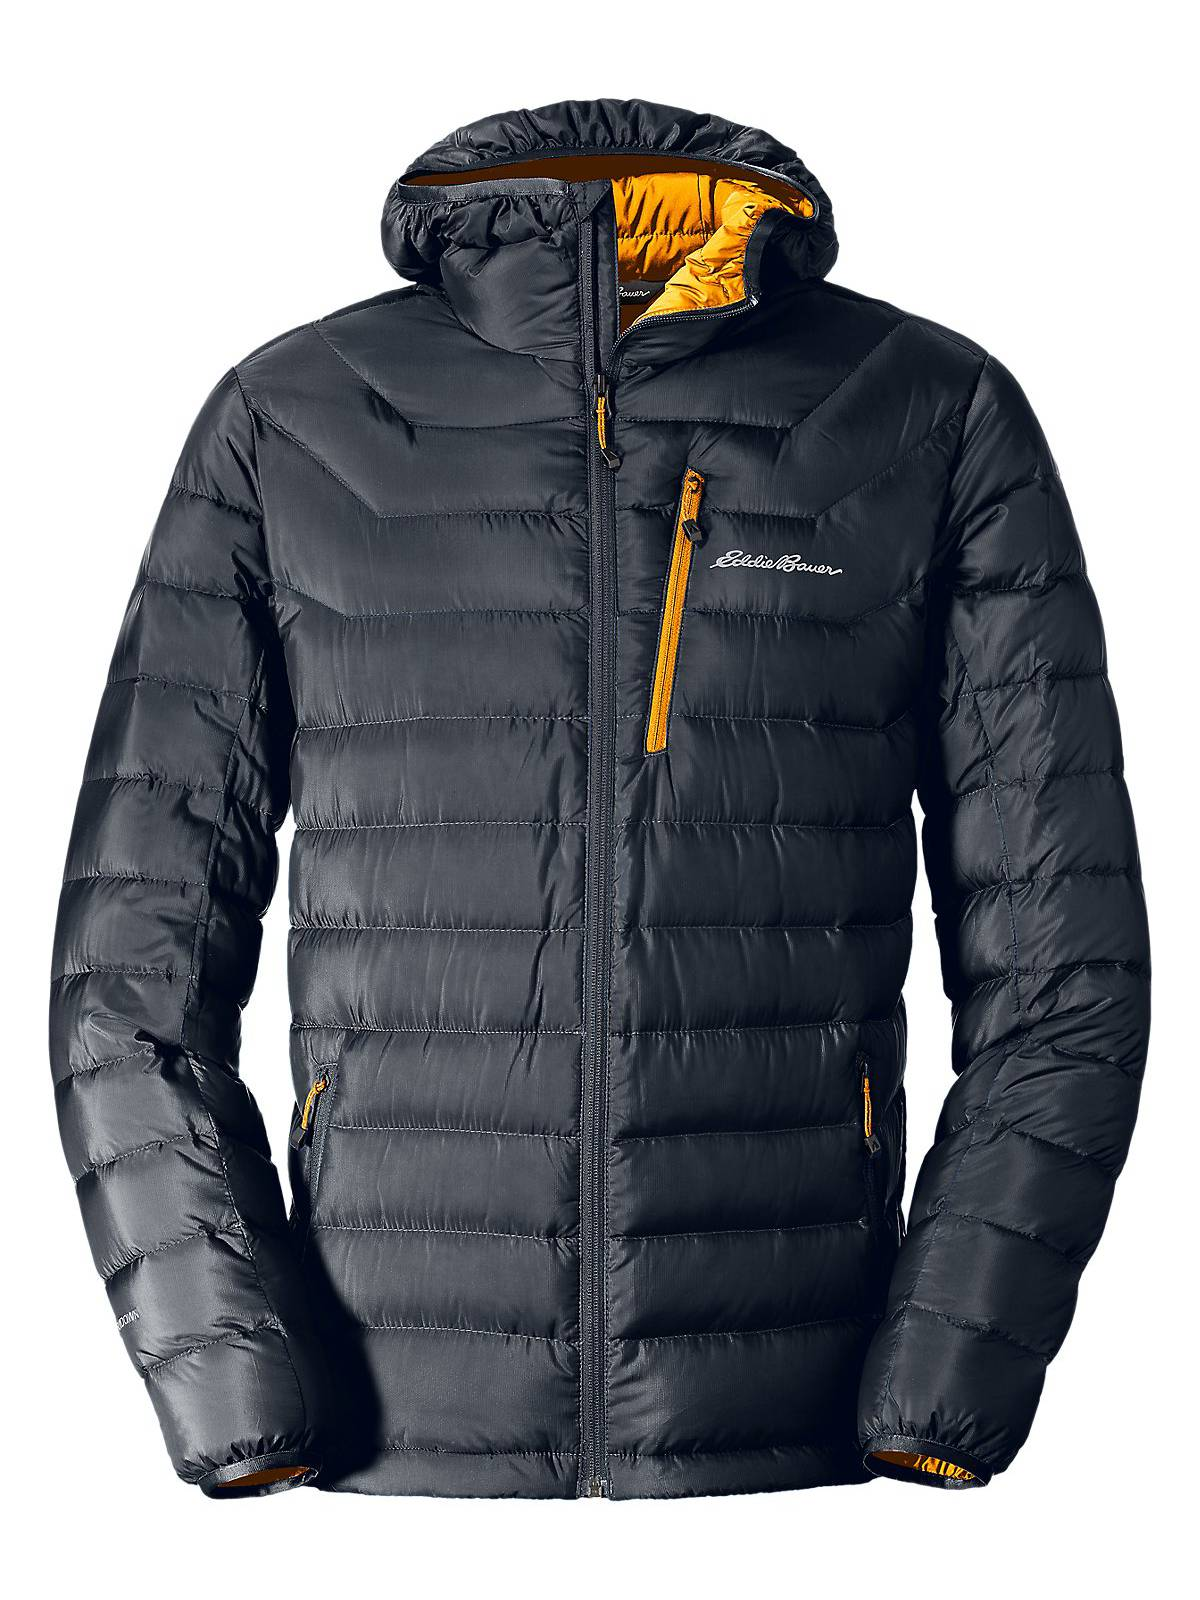 NWT Eddie Bauer Womens First Ascent Downlight Sweater Down Jacket 100/% Authentic